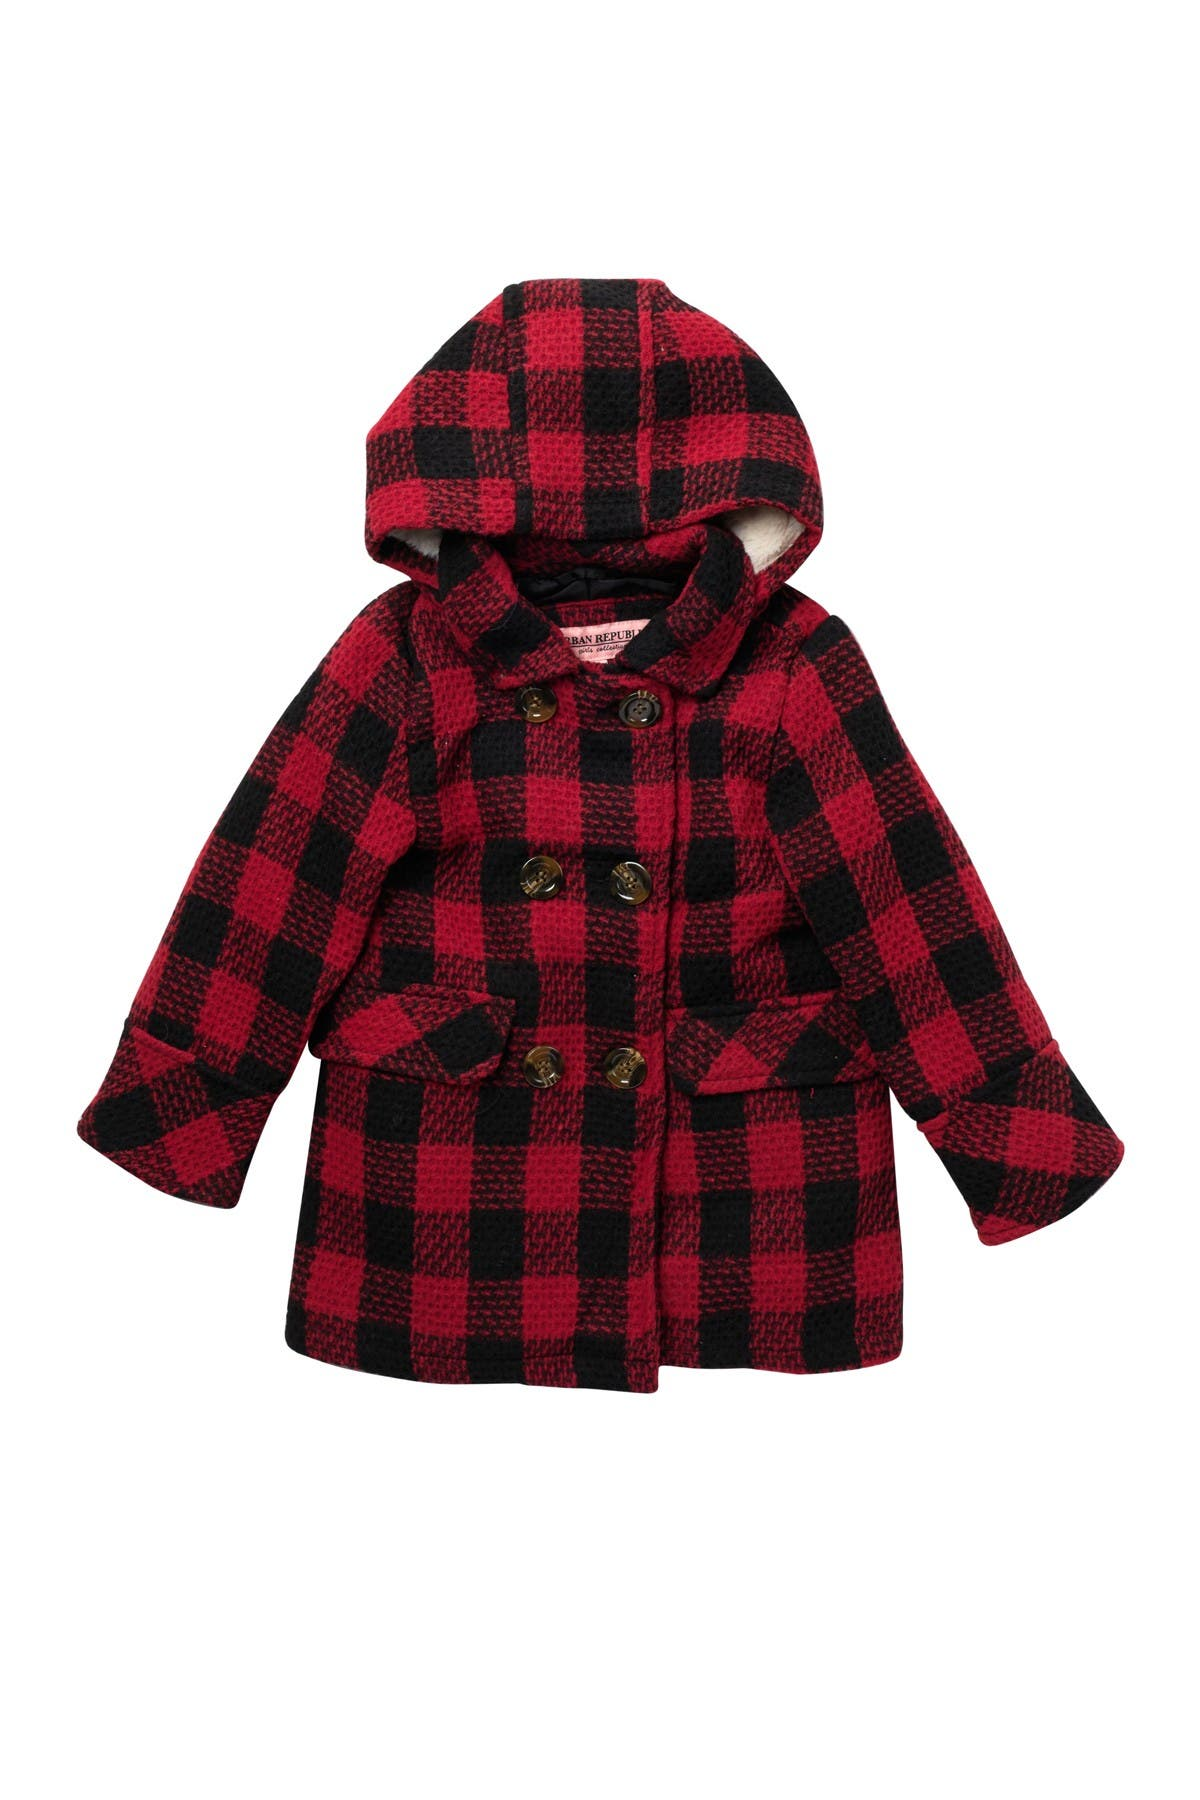 Image of Urban Republic Double Breasted Plaid Coat